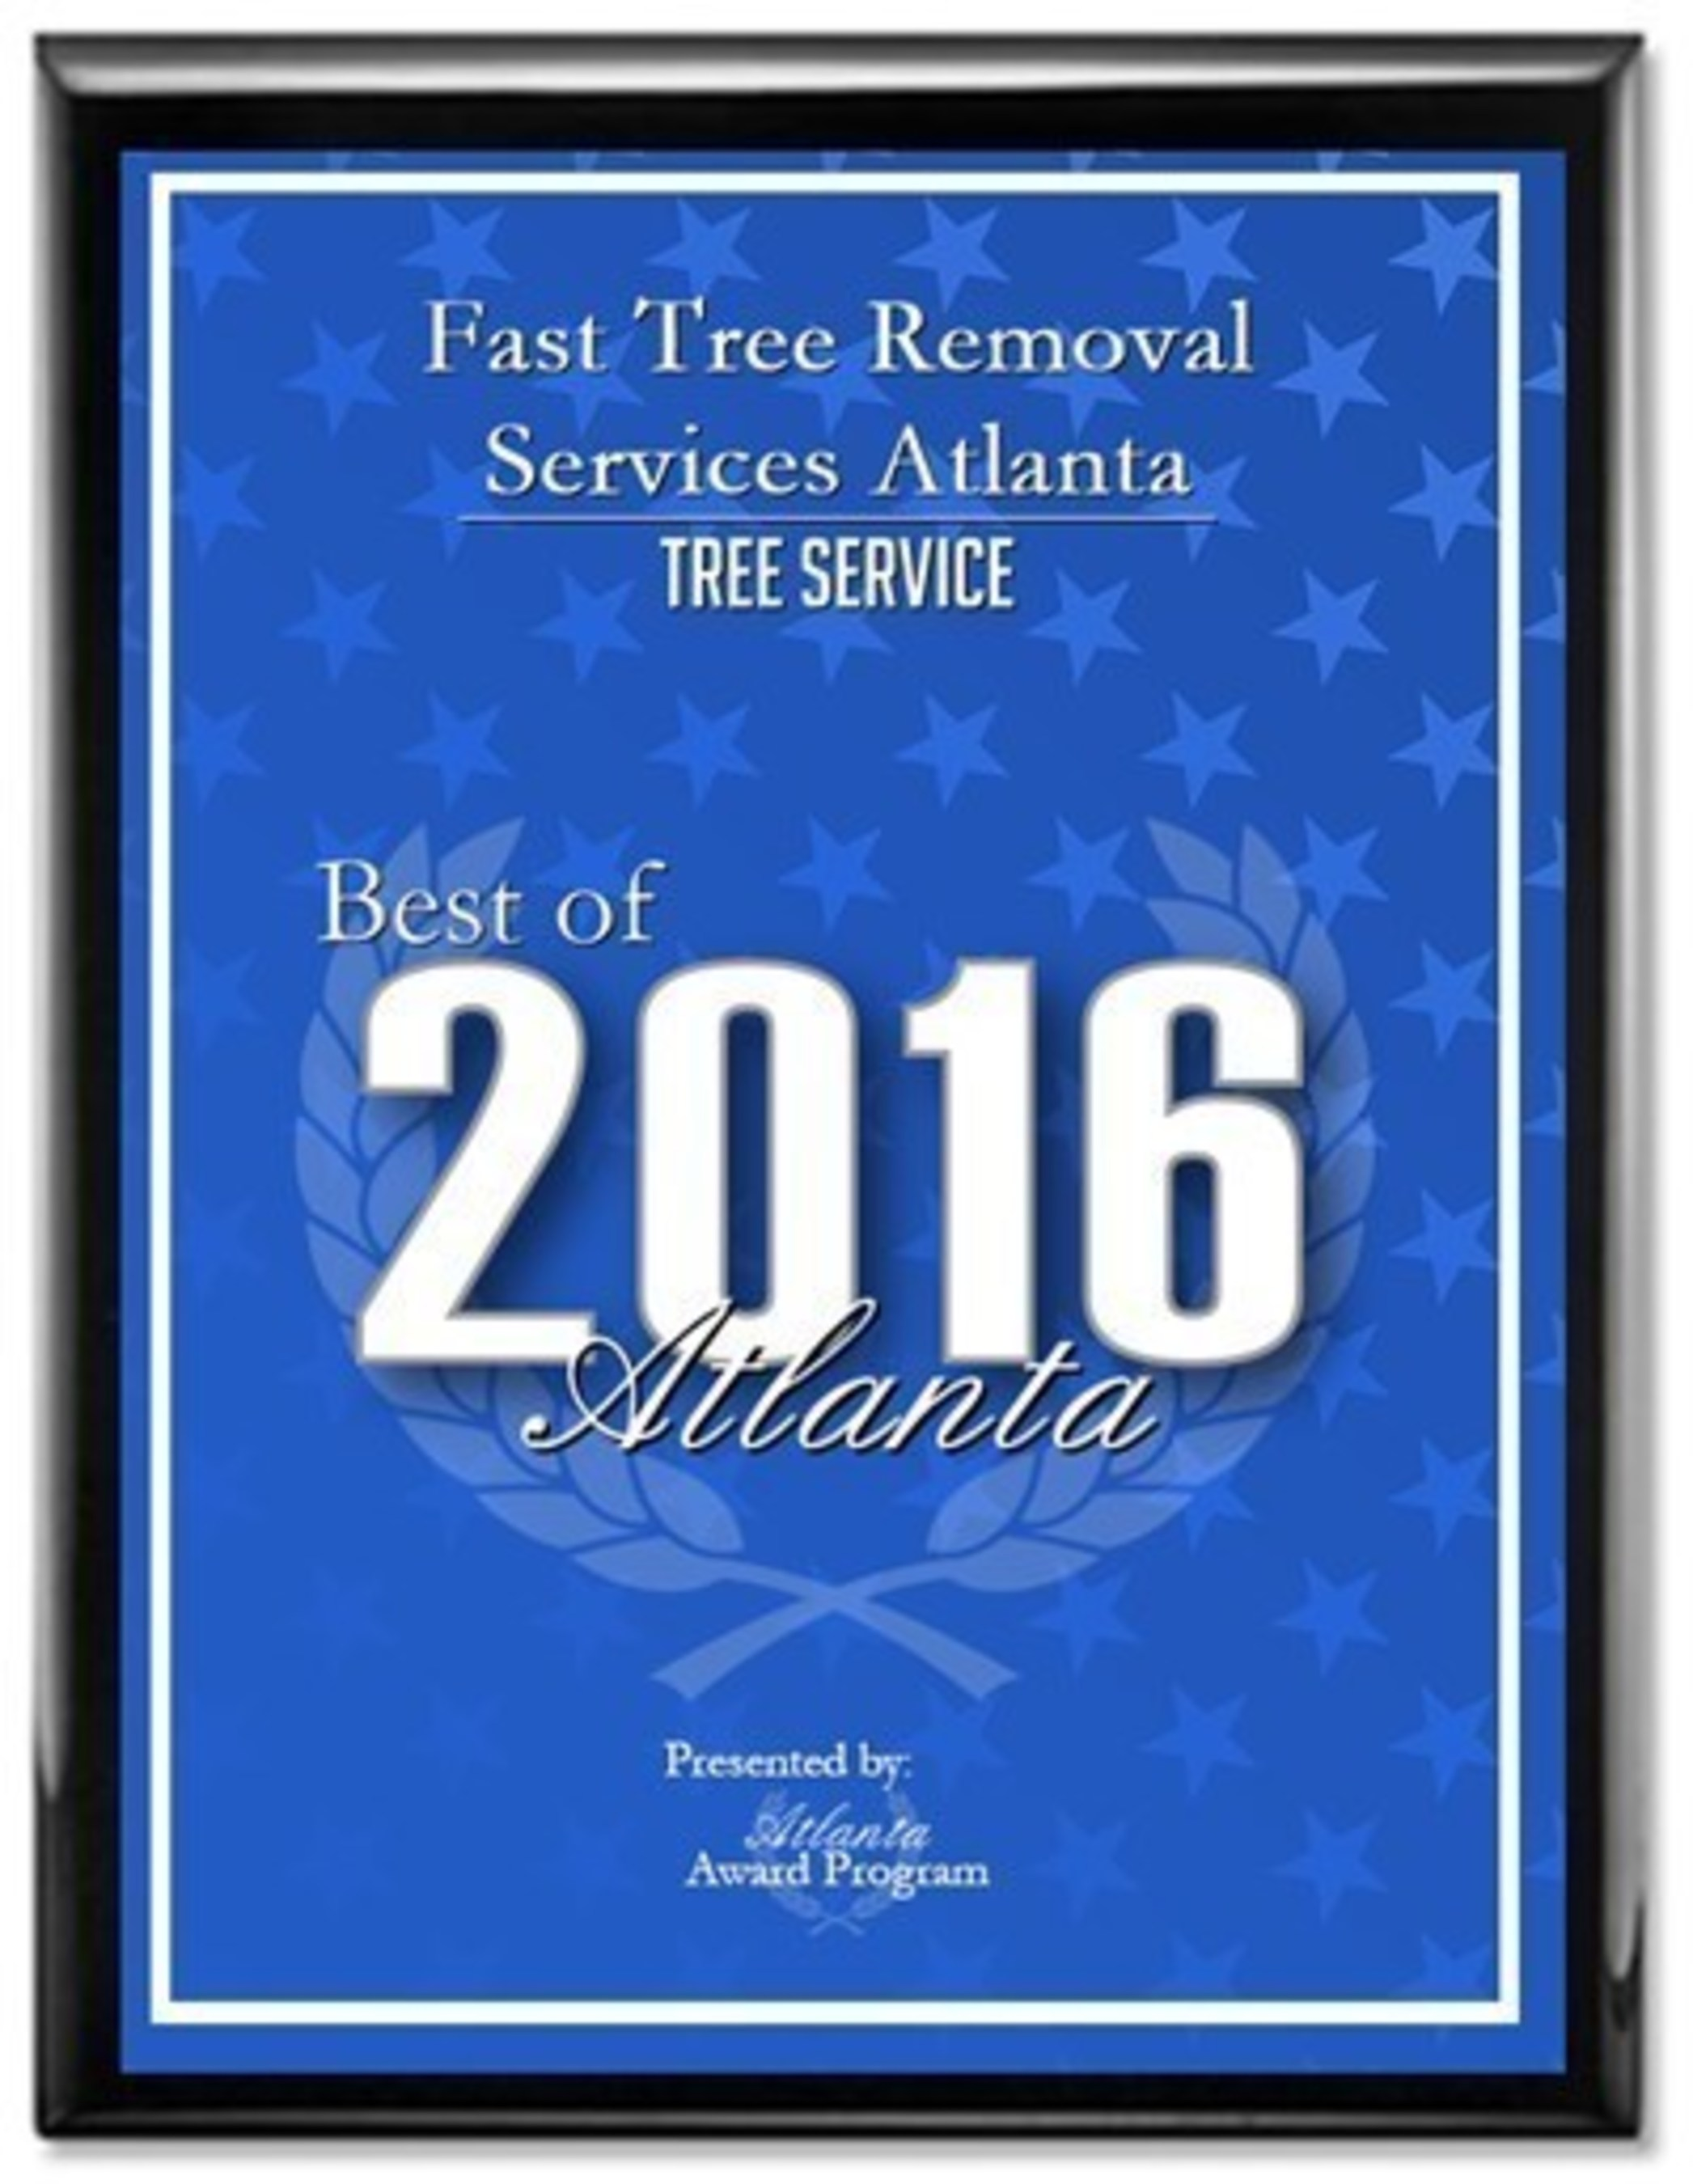 Fast Tree Removal Services Atlanta has received the 2016 Best of Atlanta Award in the Tree Service category by the Atlanta Award Program.